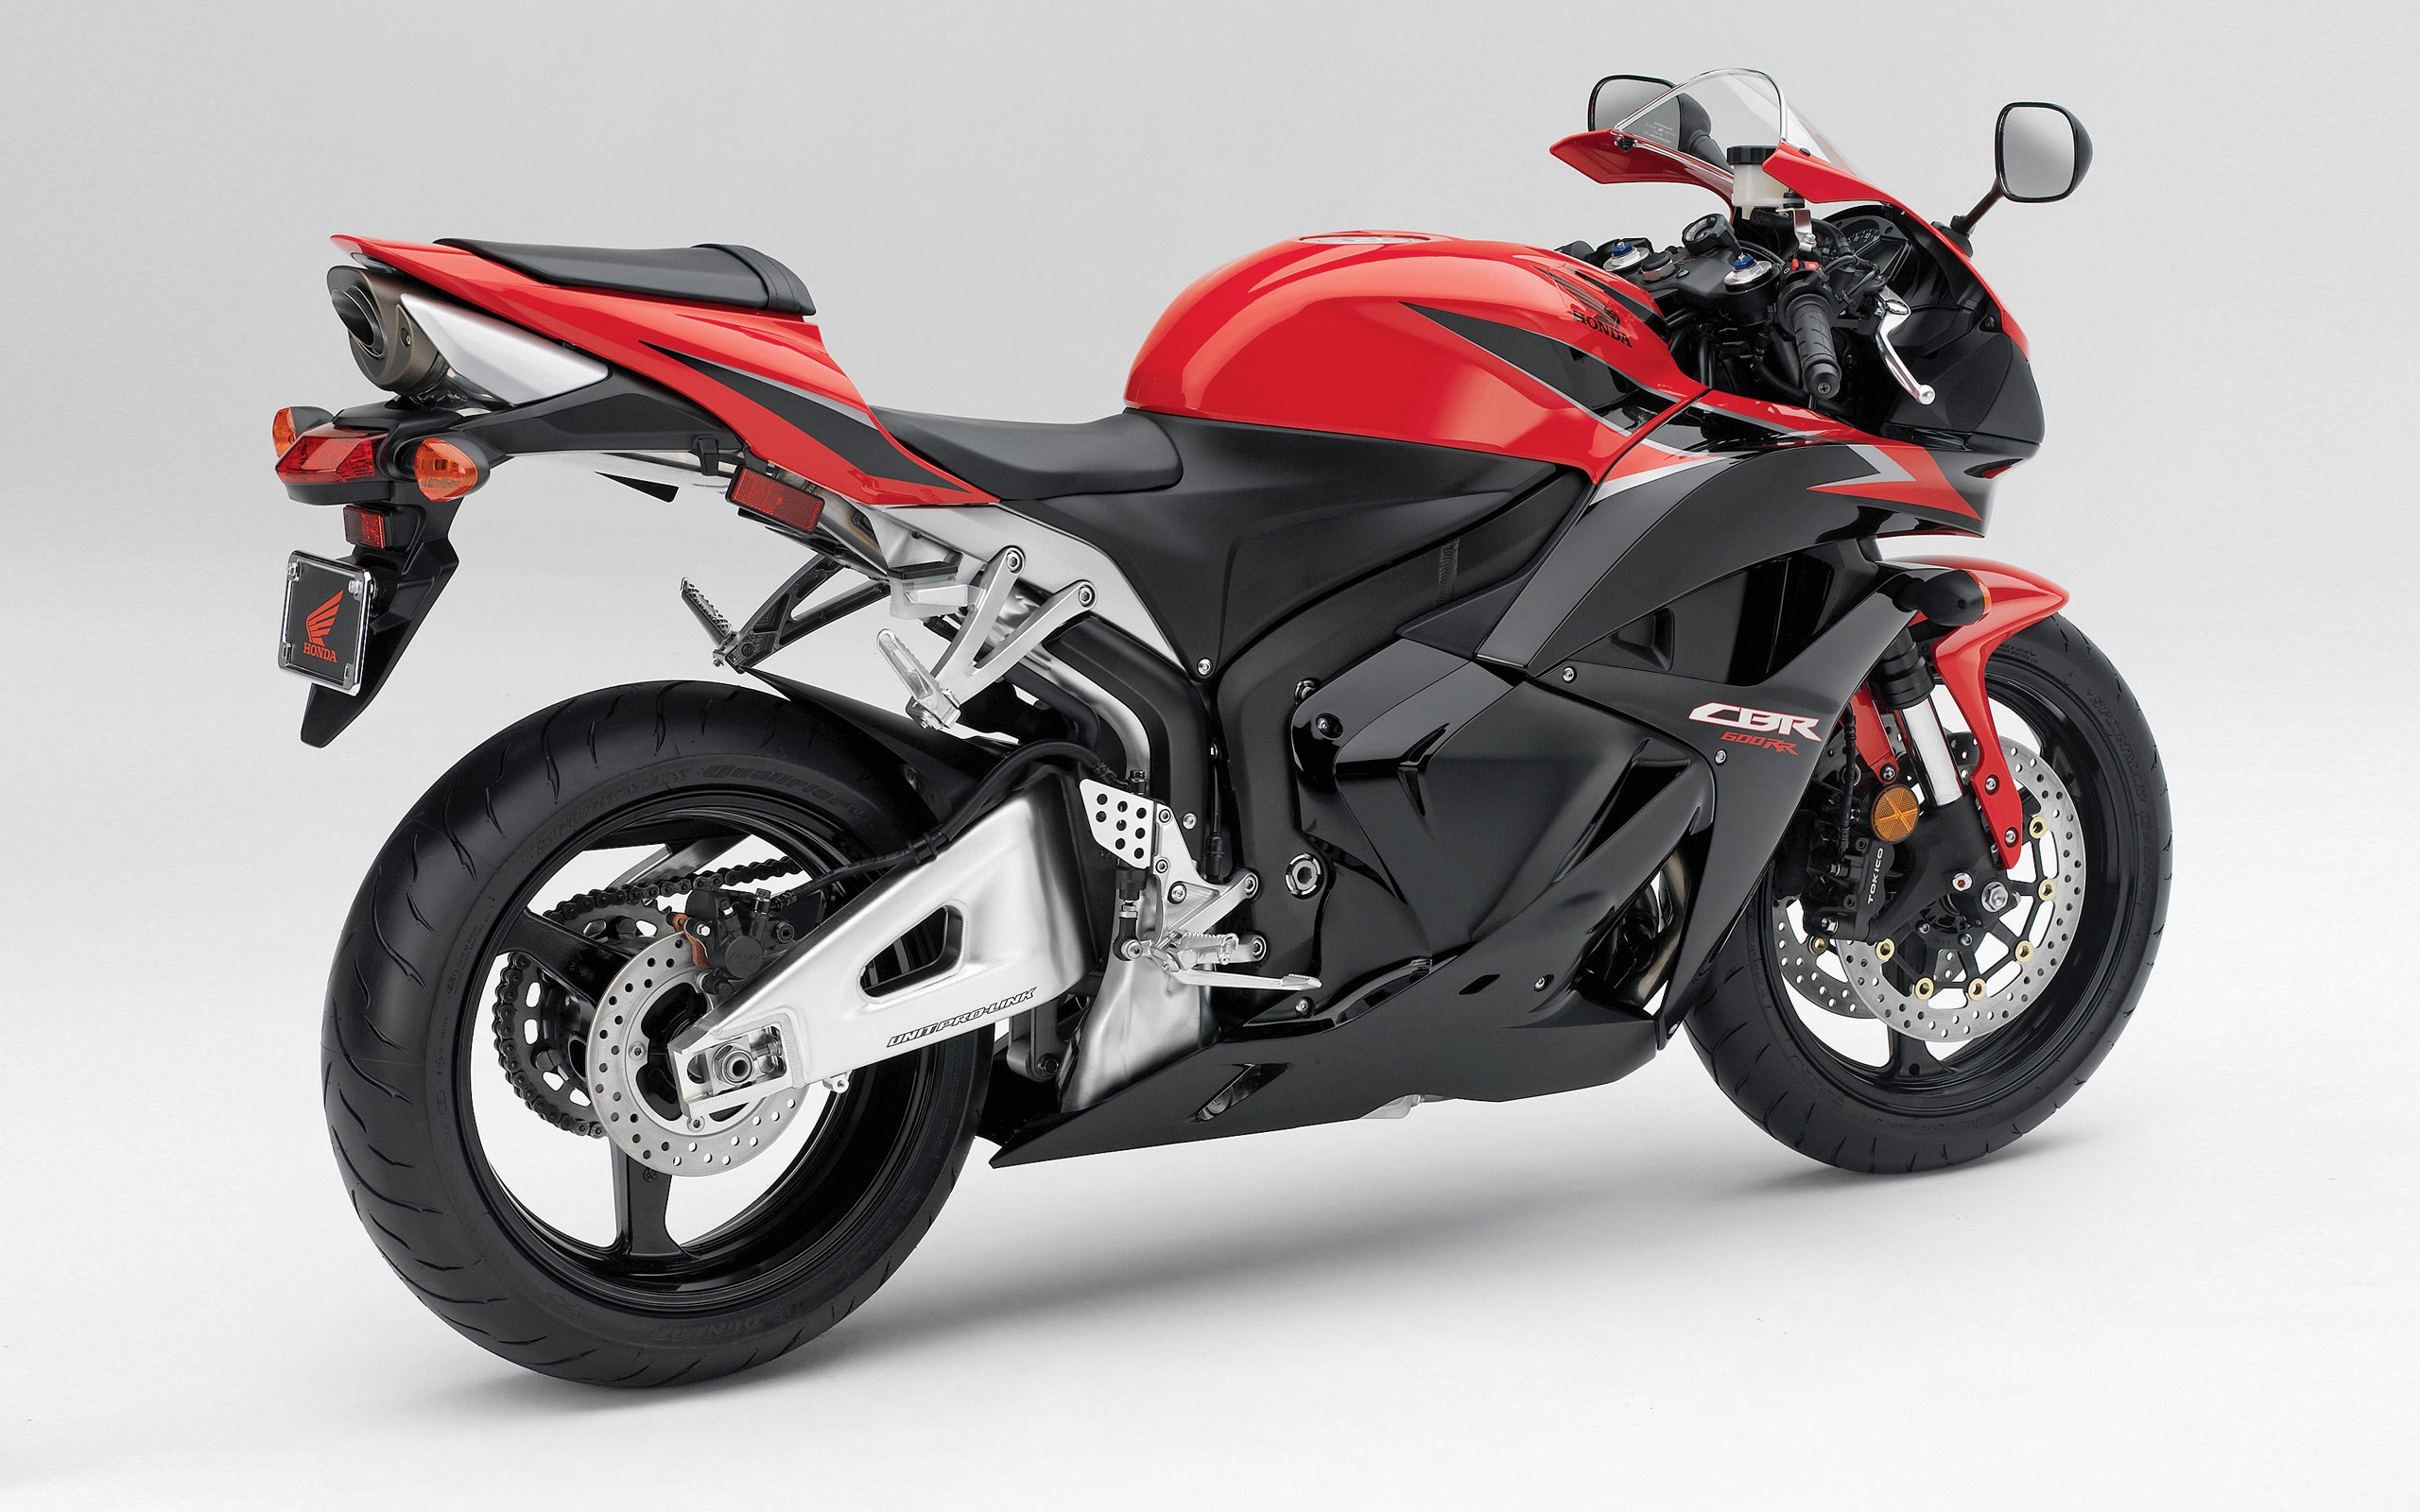 Honda CBR600rr Pictures & Wallpapers